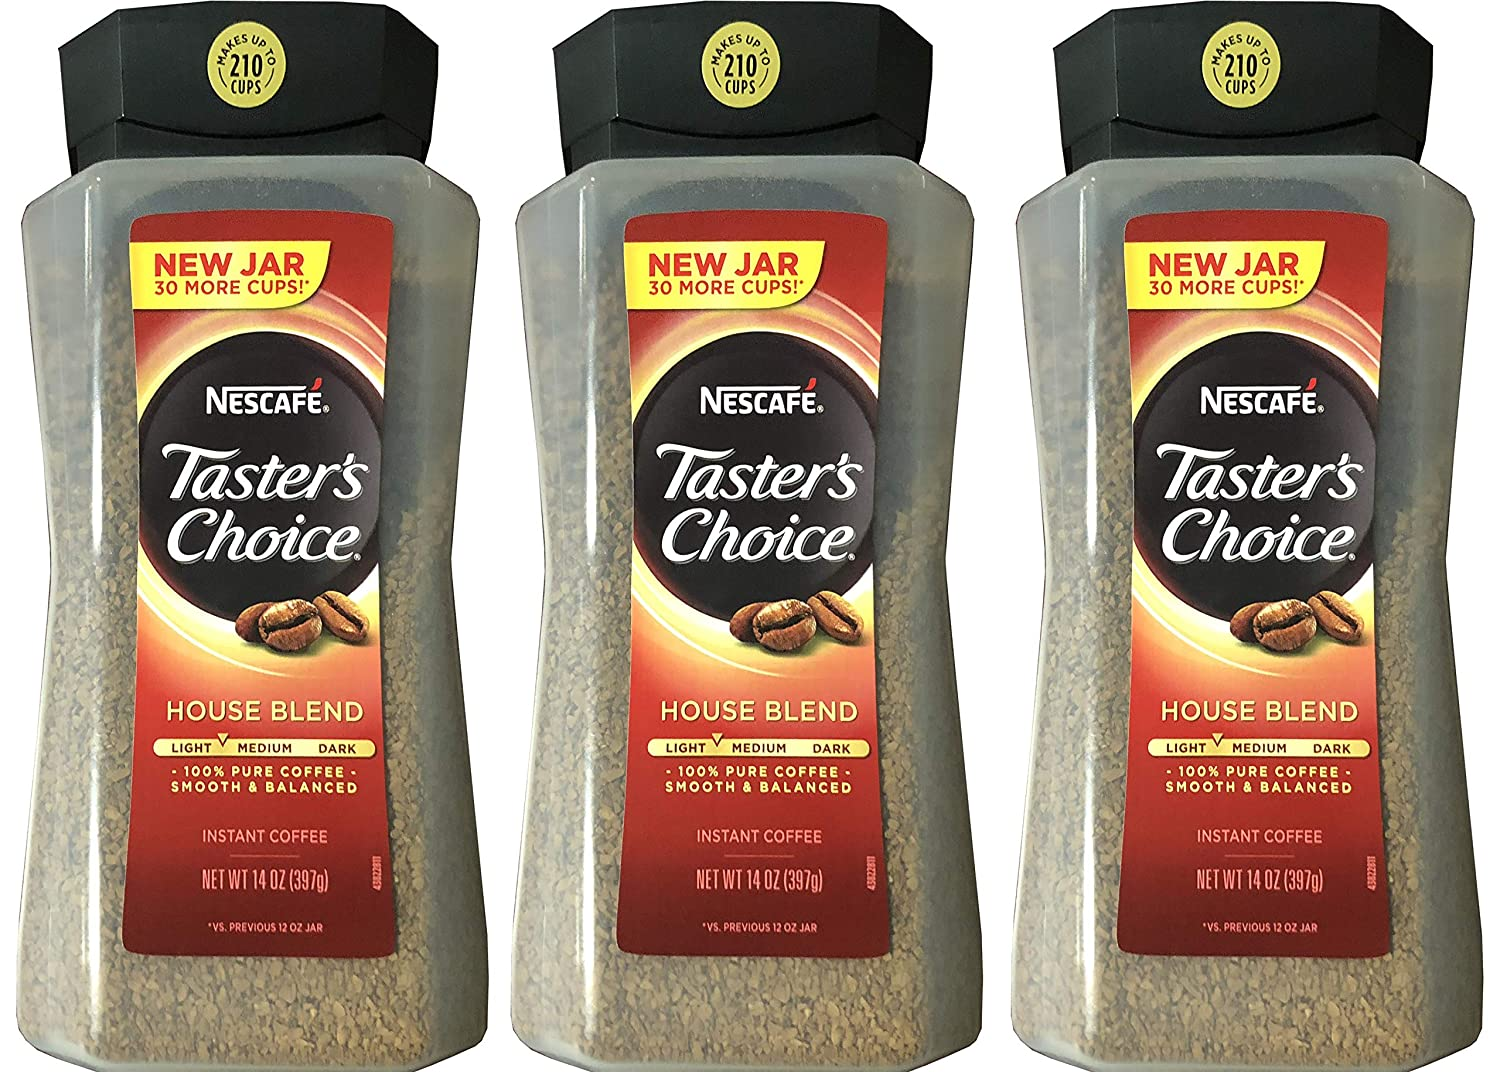 Taster's Choice Original Gourmet Instant Coffee 12Oz3 Pack Taster' s Choice